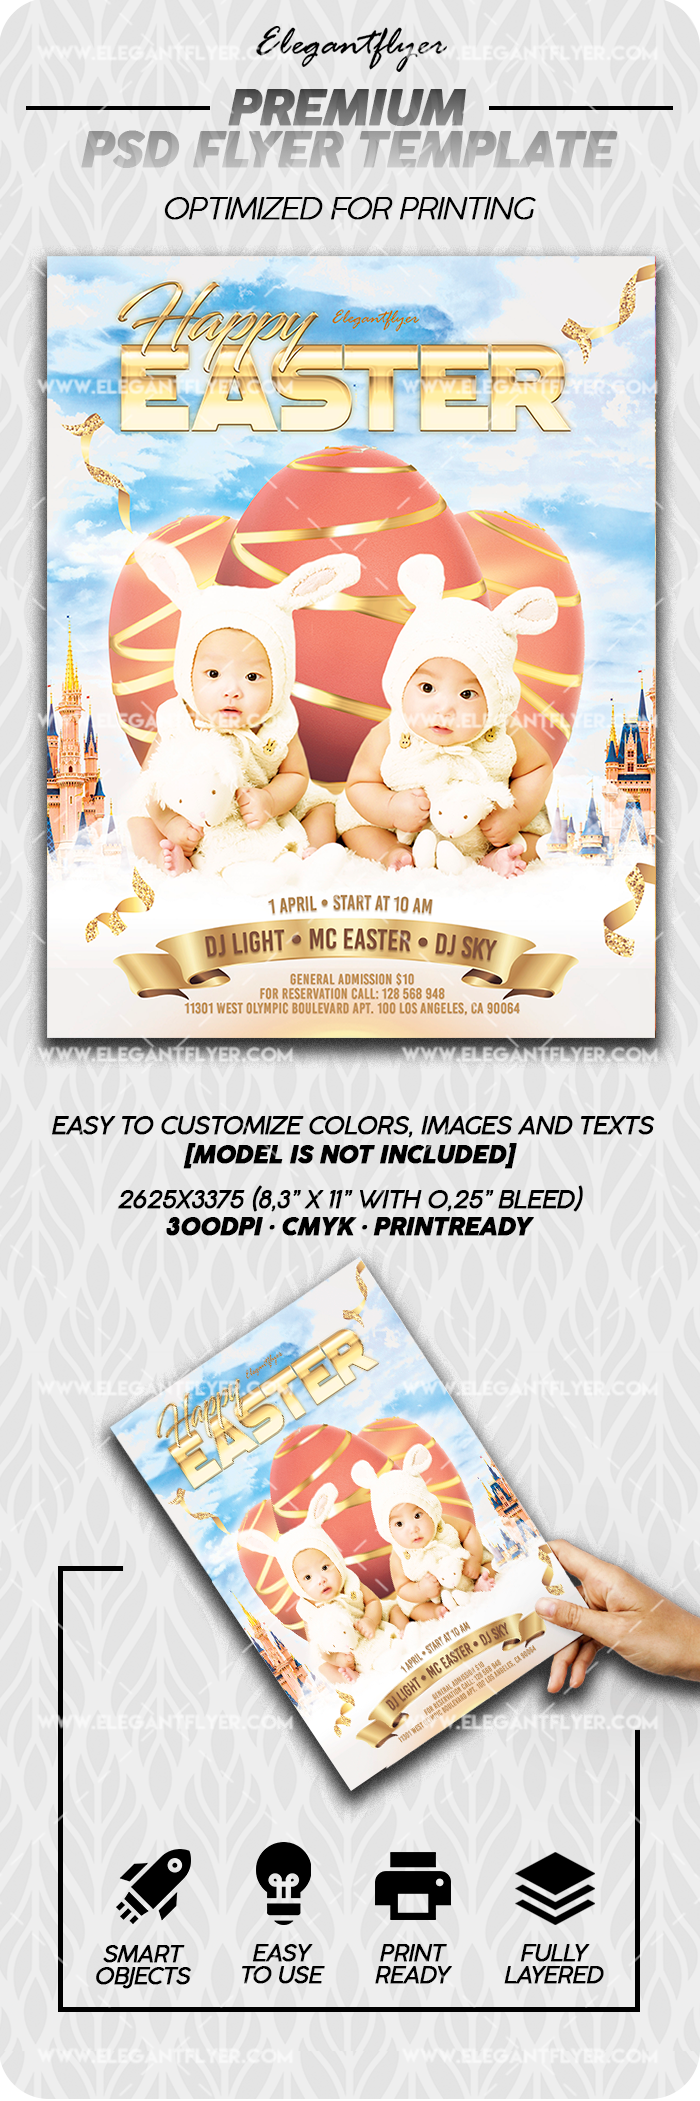 Happy Easter – PSD Flyer Template